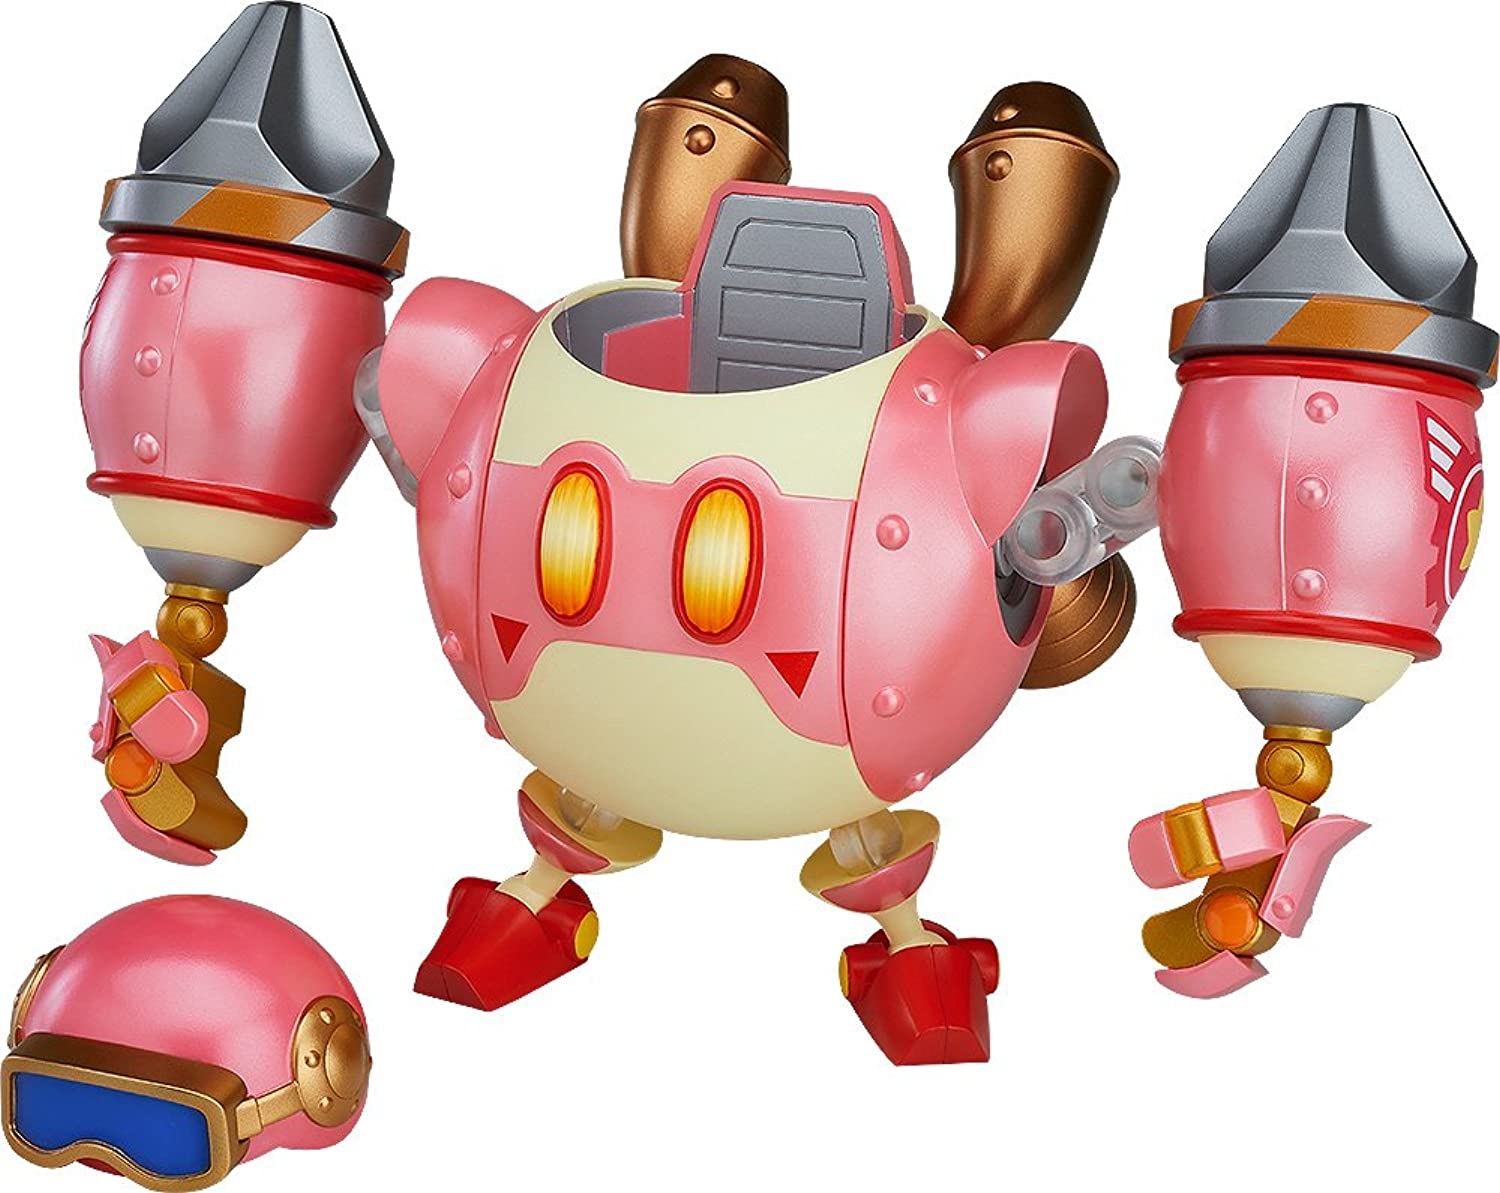 Good Smile Company G90452 Kirby Planet Nendgoldid More Robobot Armor Figure, 6 inches